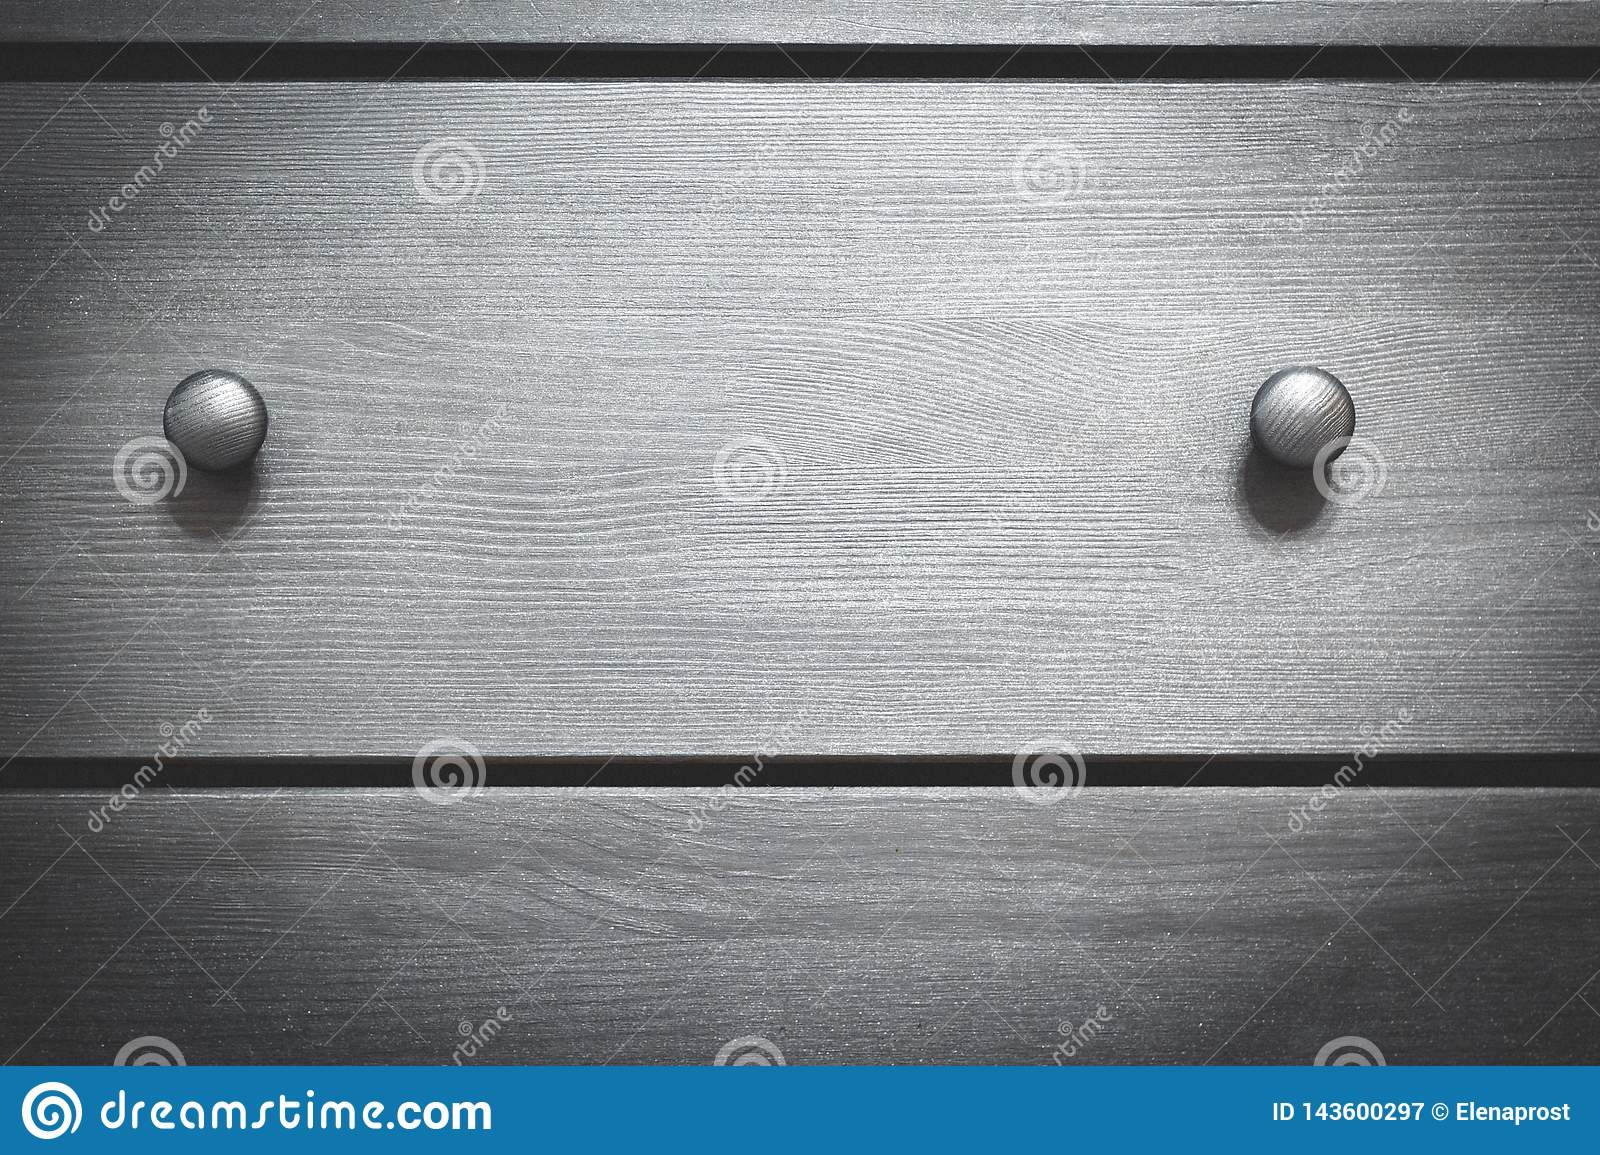 Background texture wooden chest with handles